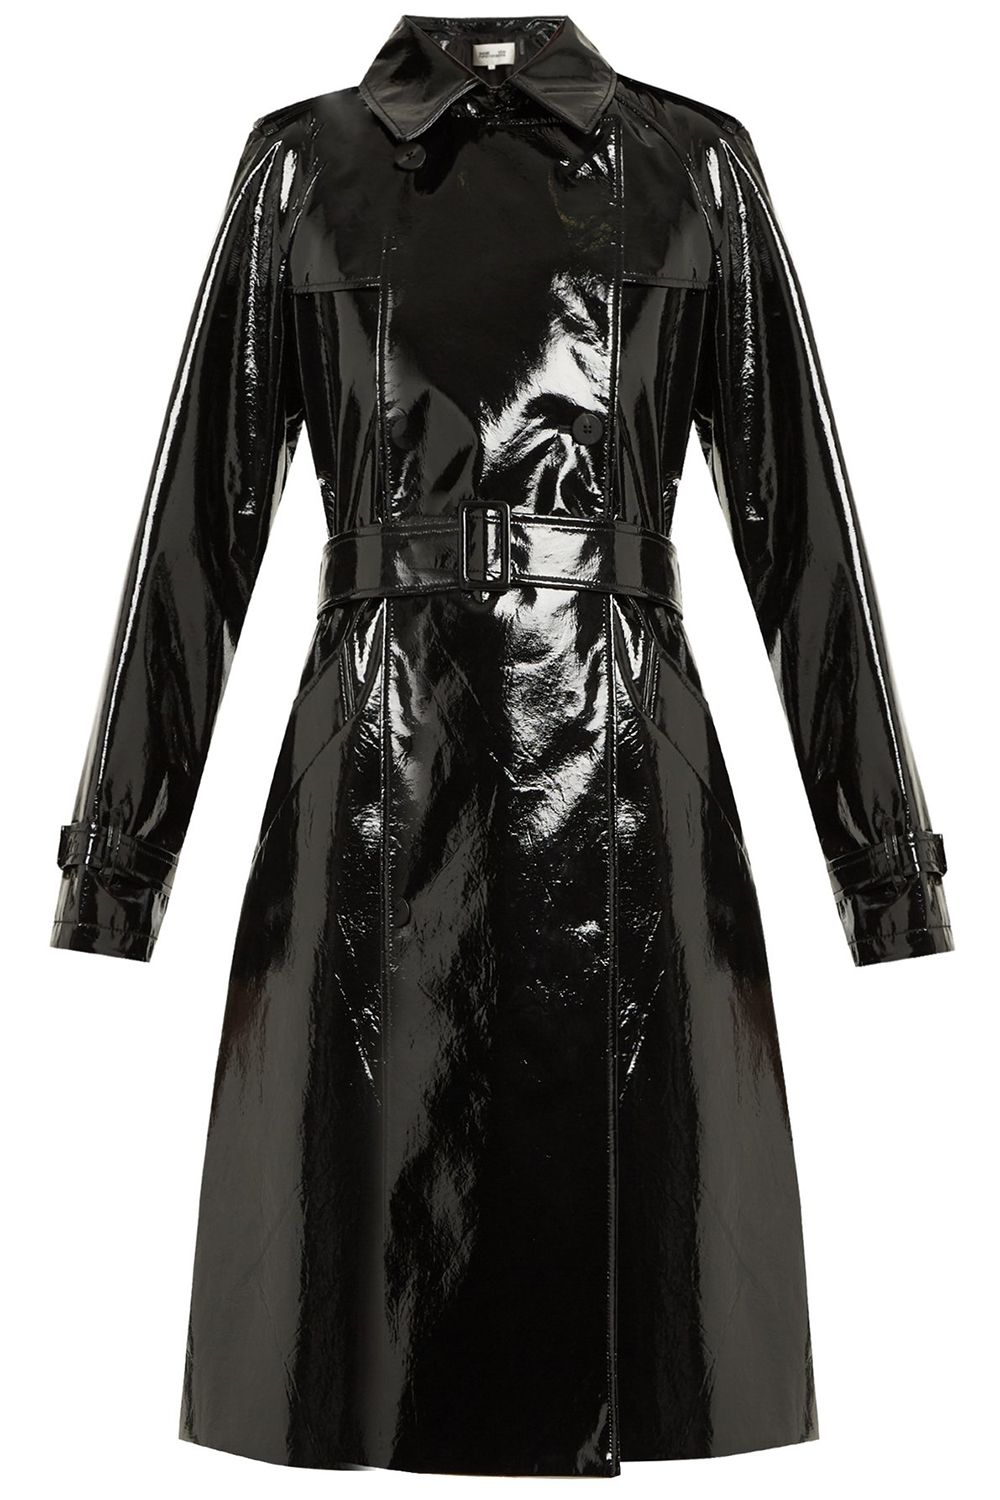 hbz-the-list-spring-jackets-dvf-1519143702.jpg (1000×1500)